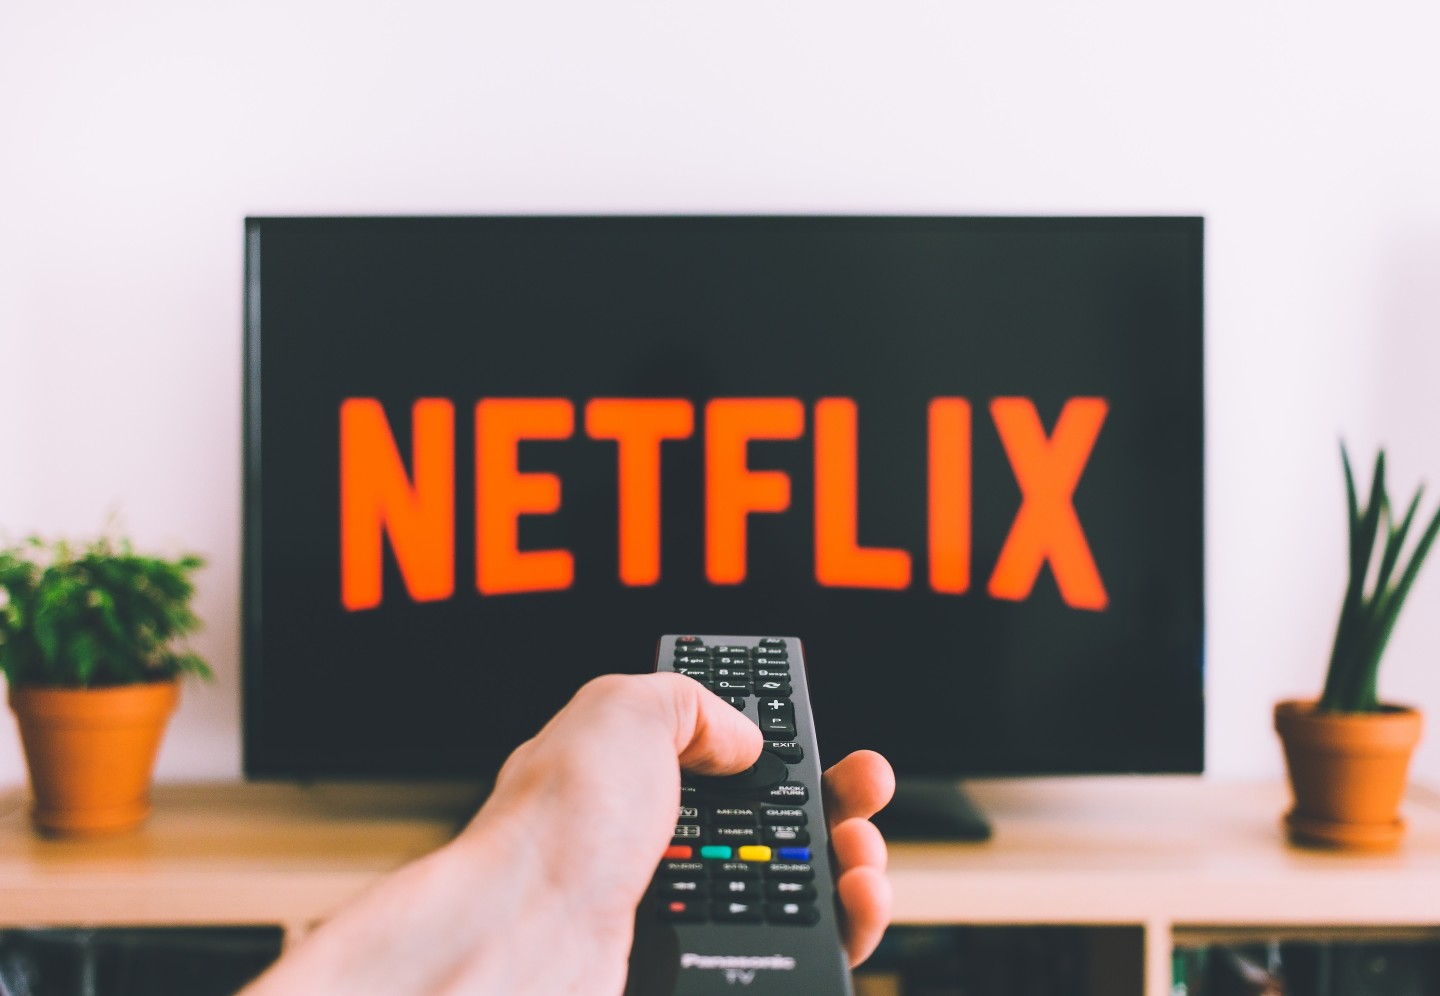 netflix-television-screen-remote-control